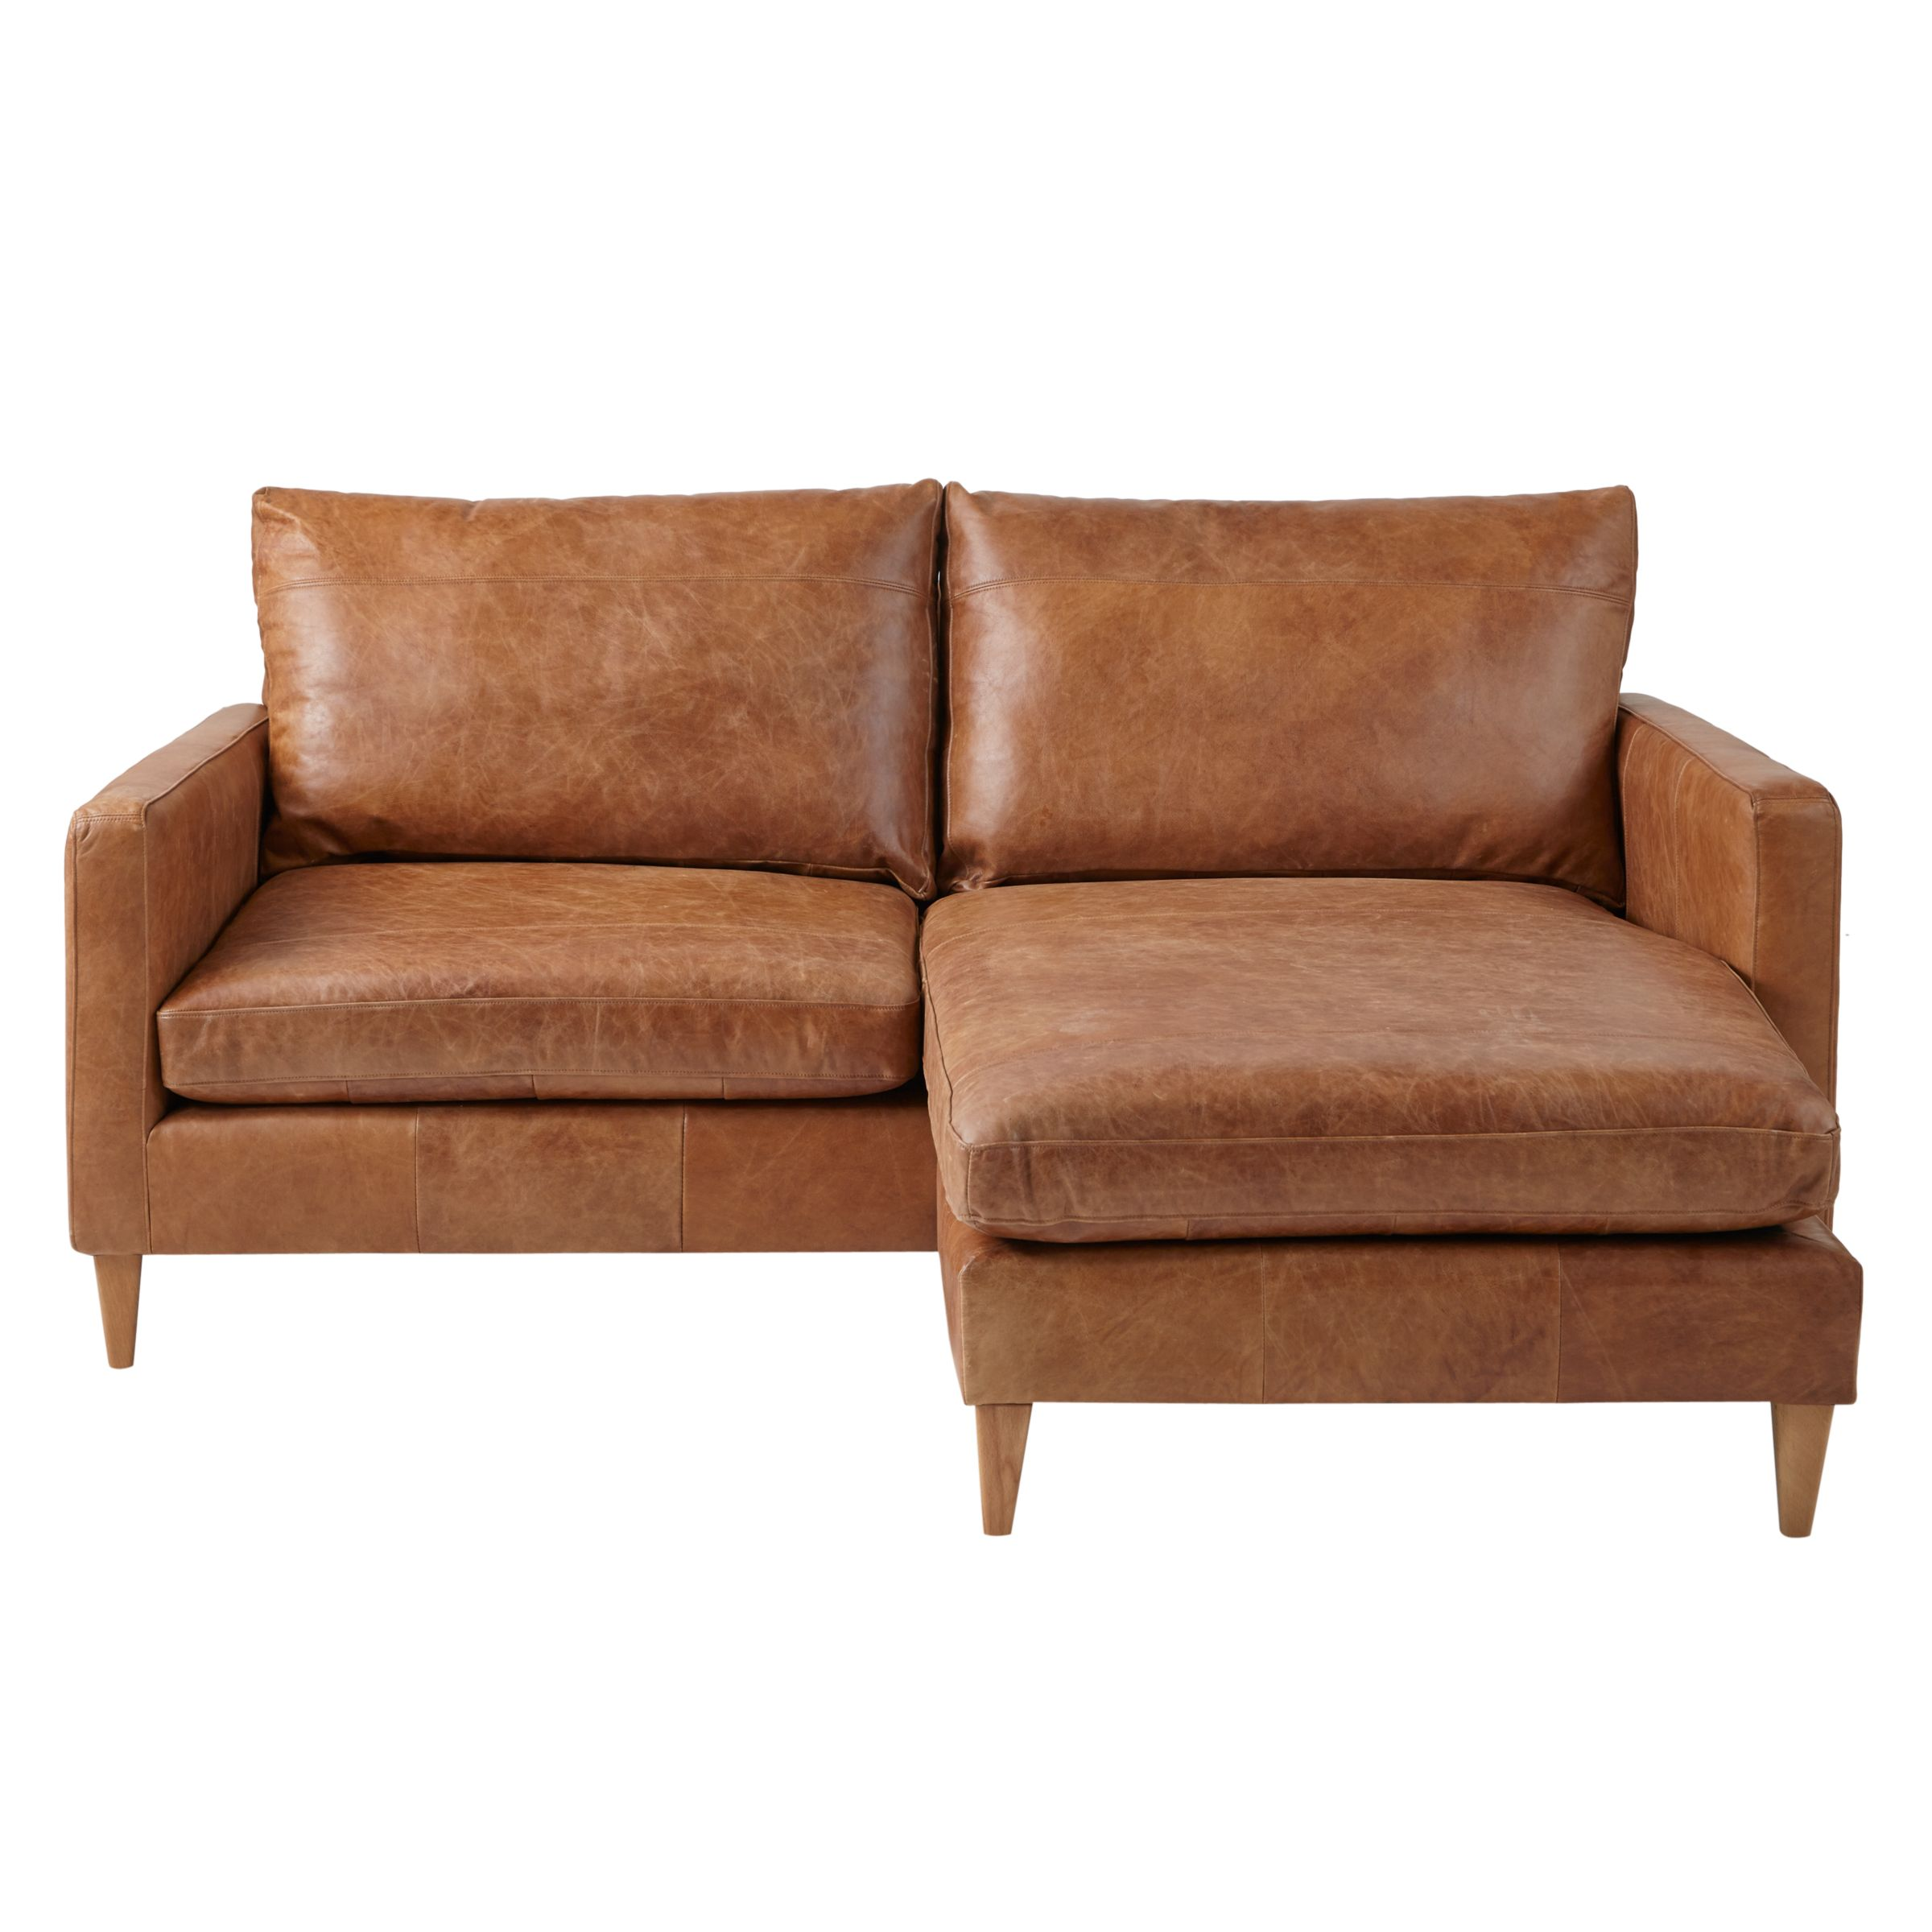 Top 30 cheapest leather chaise sofa uk prices best deals for Brown leather chaise end sofa